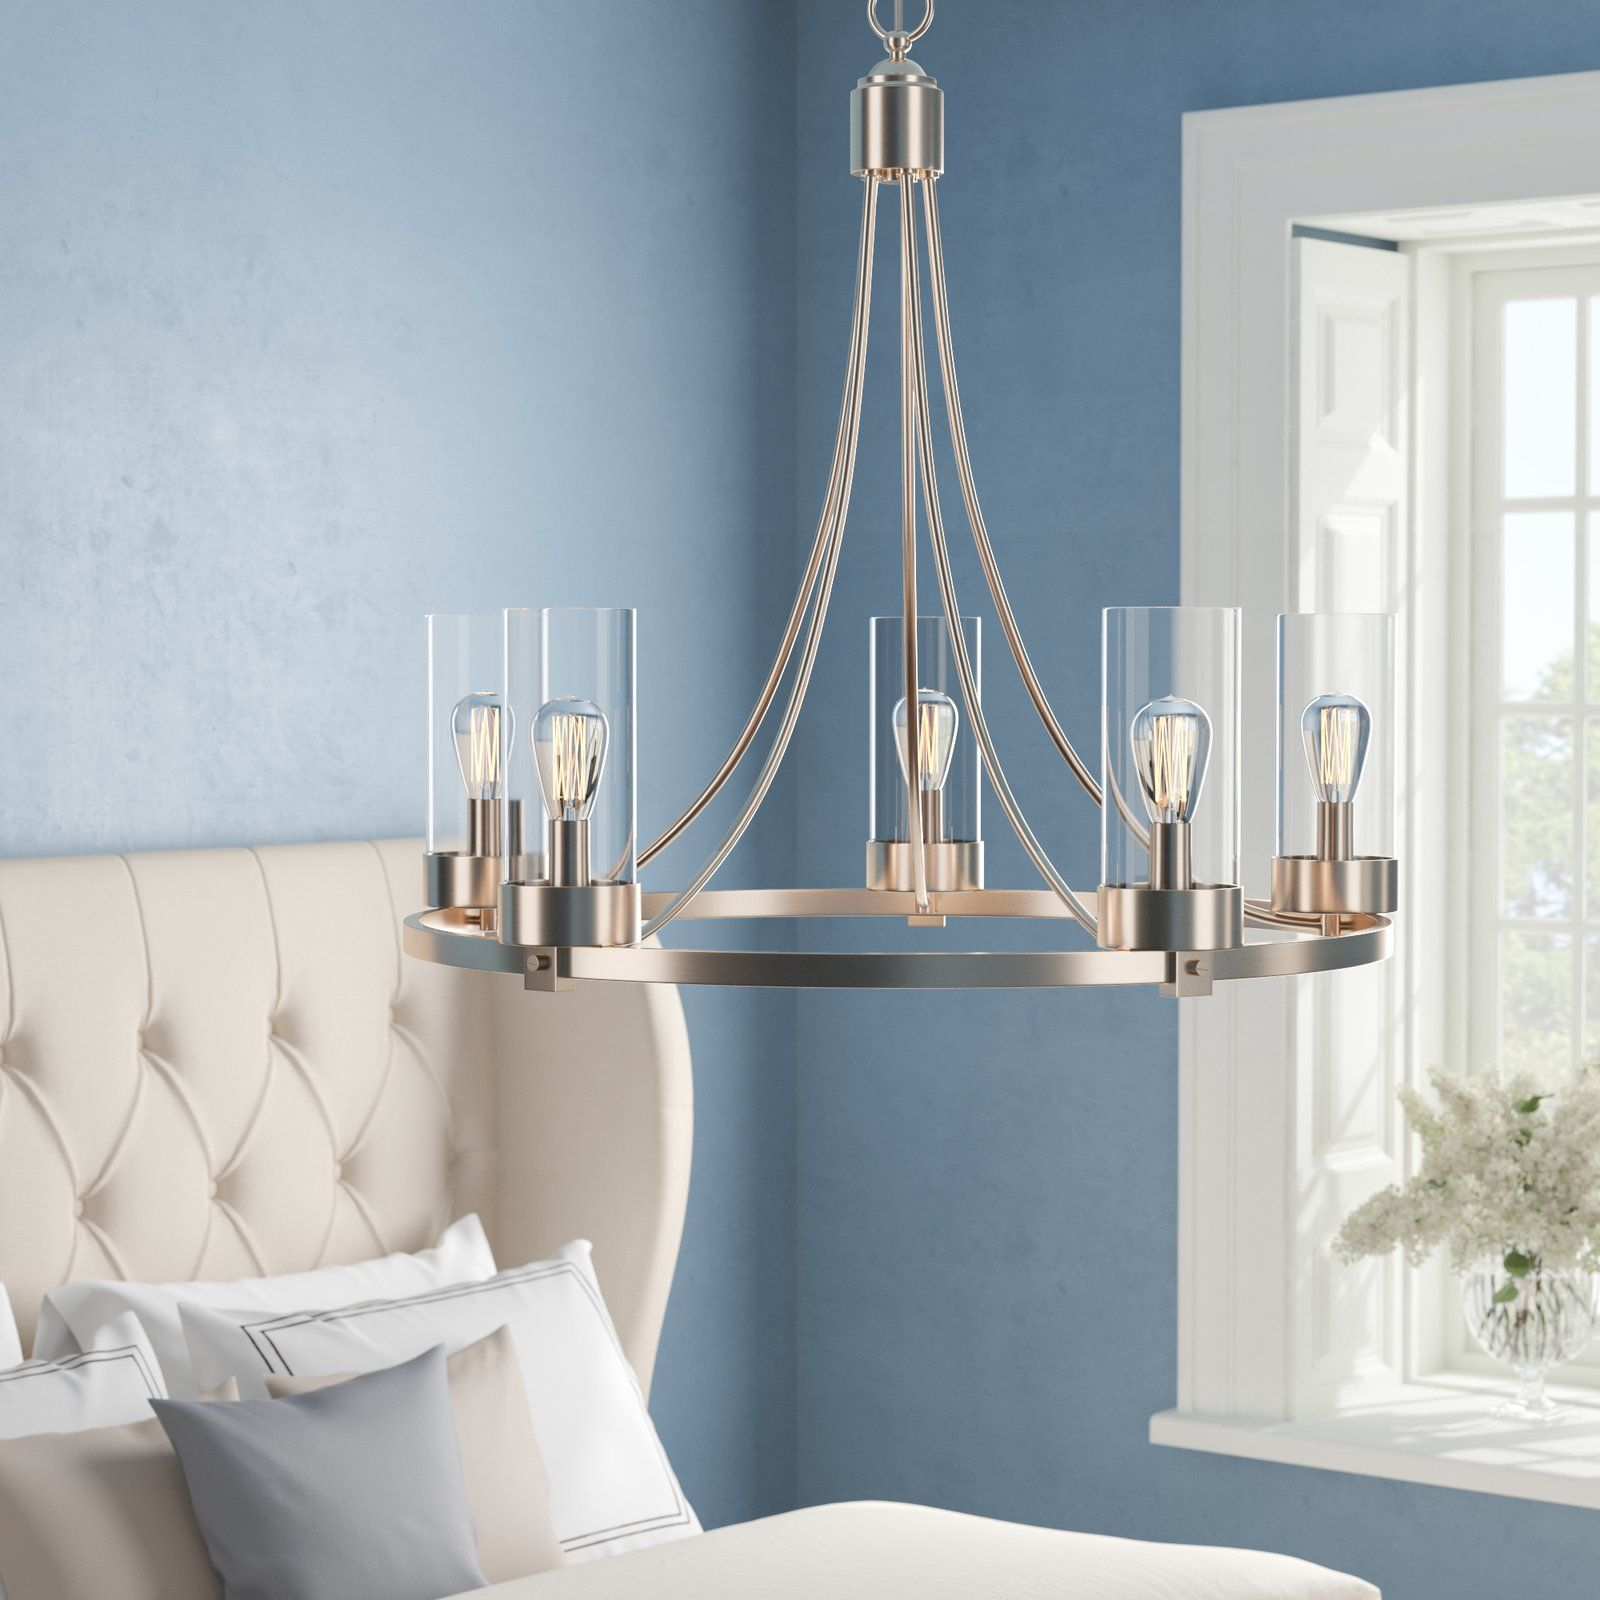 5Light Shaded Wagon Wheel Chandelier (With images